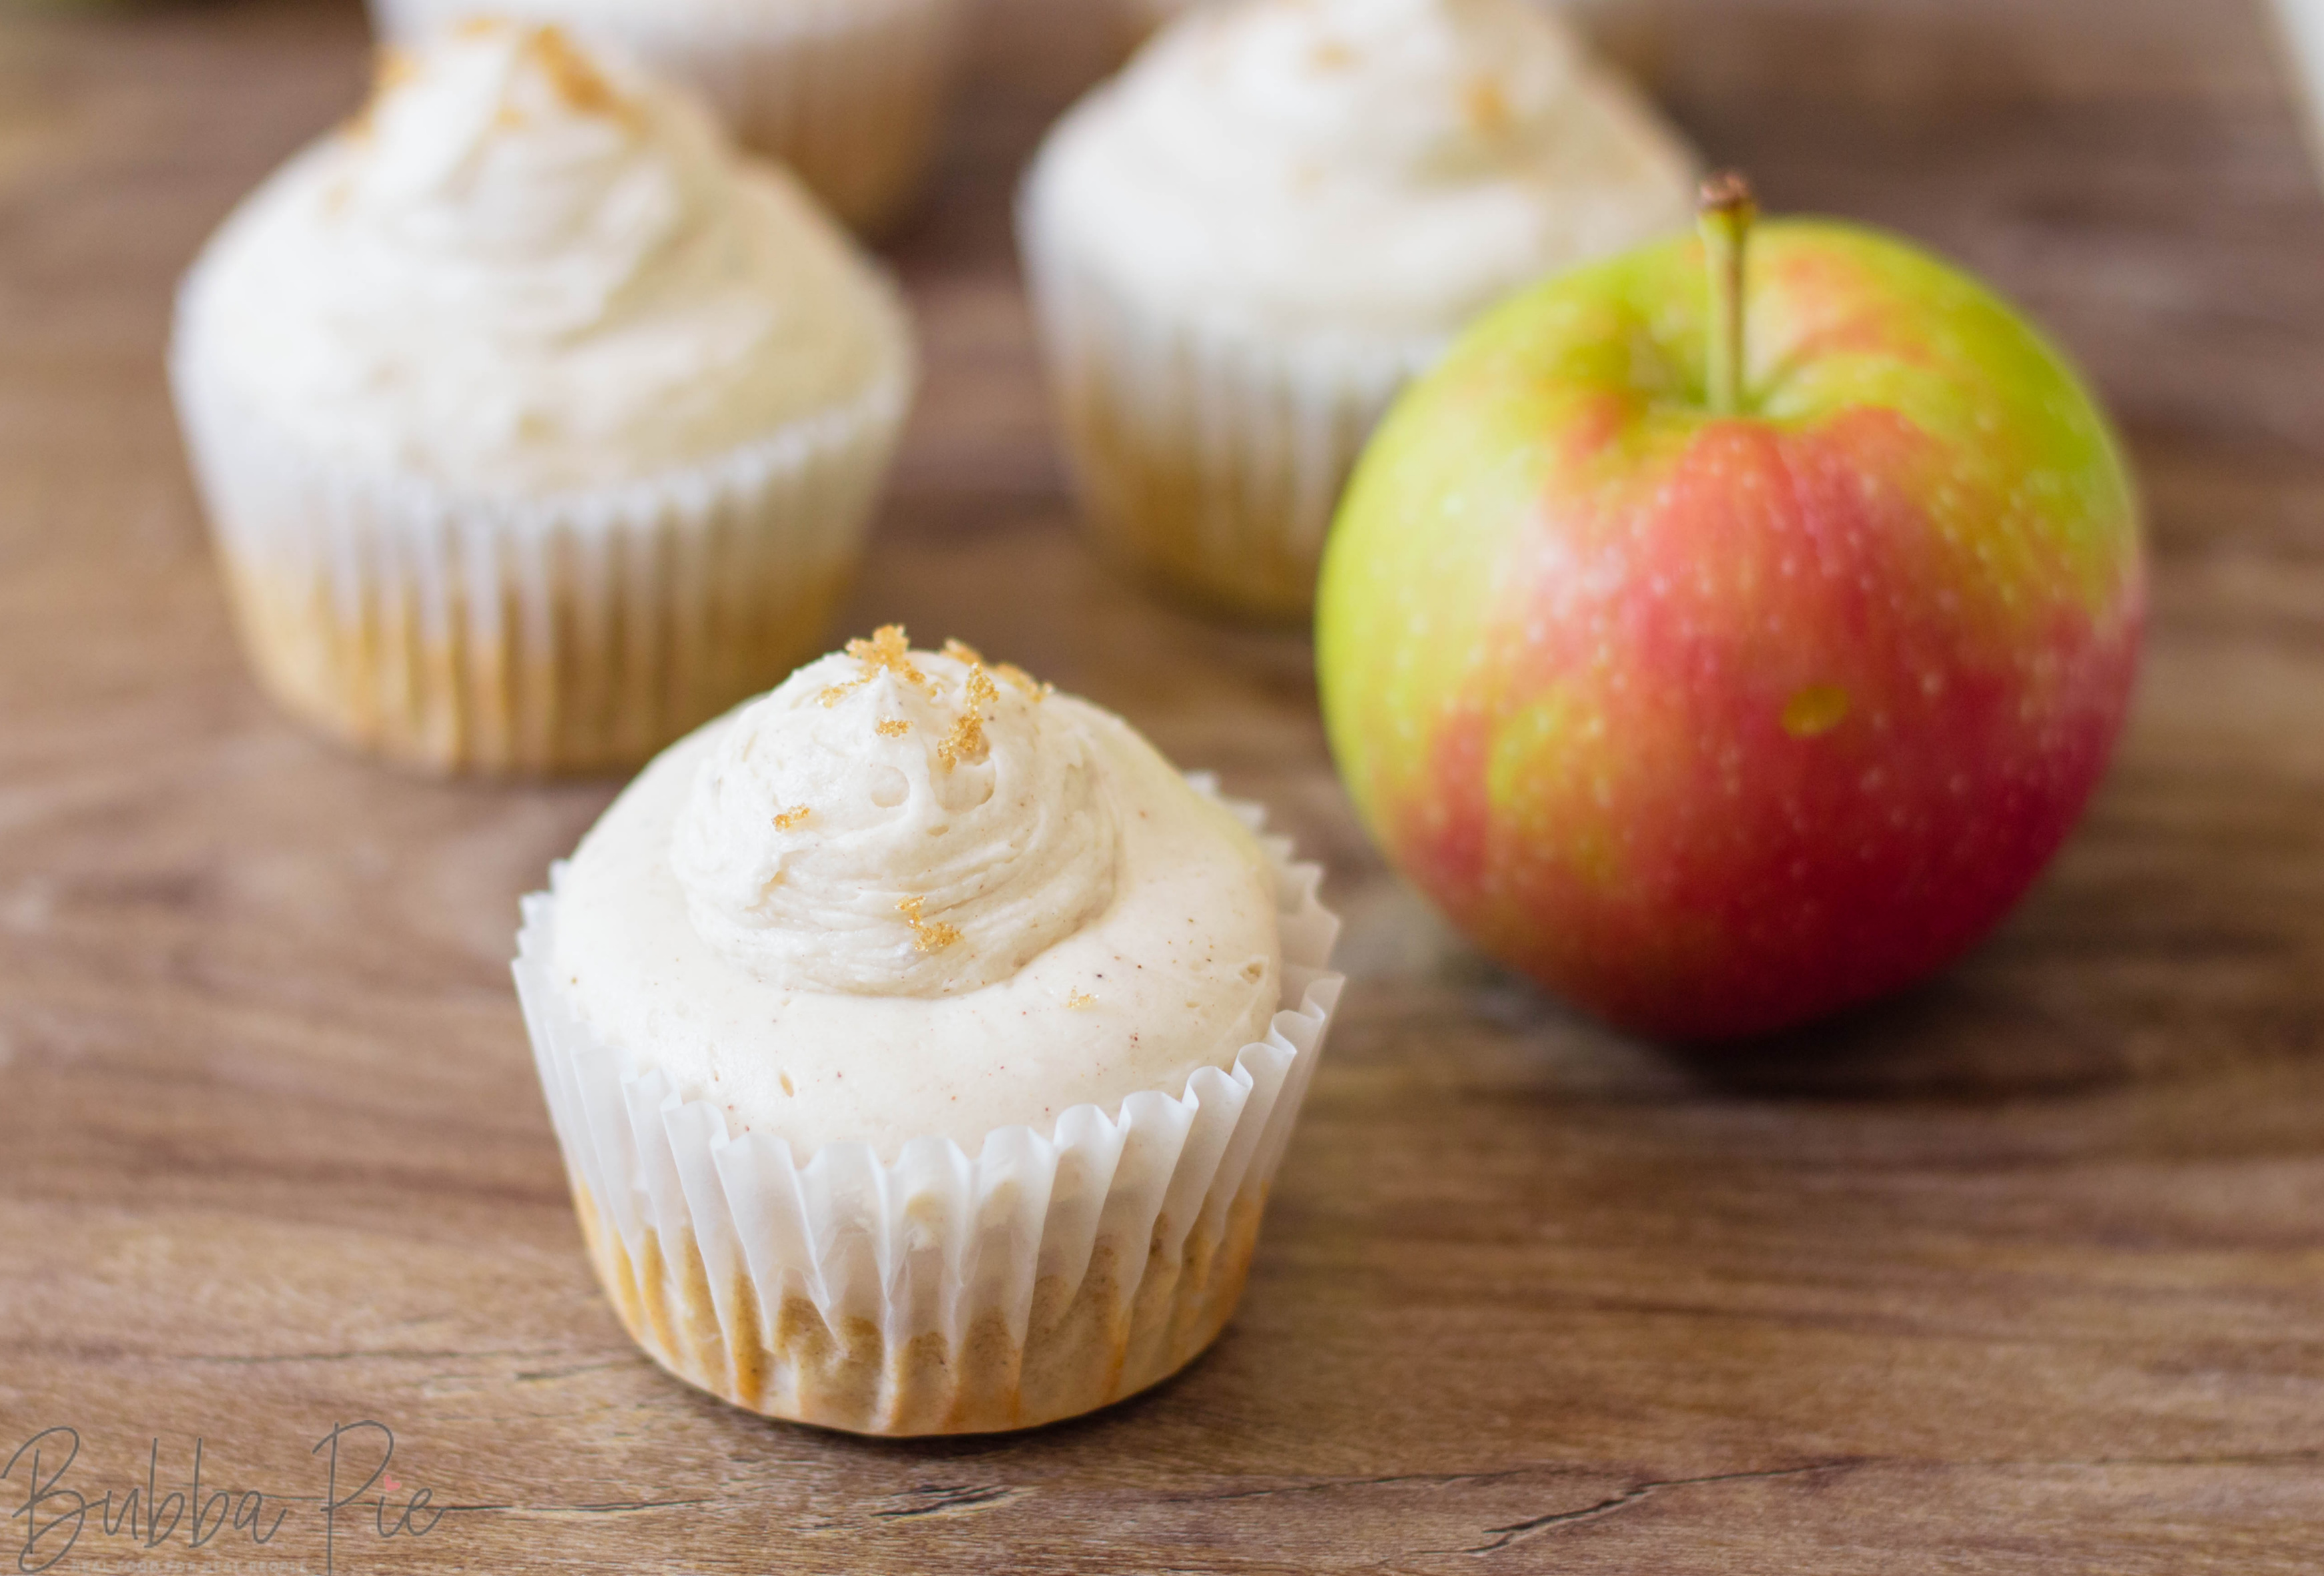 This Apple Cinnamon Cupcakes with Buttercream Frosting recipe is a perfect alternative thanksgiving dessert